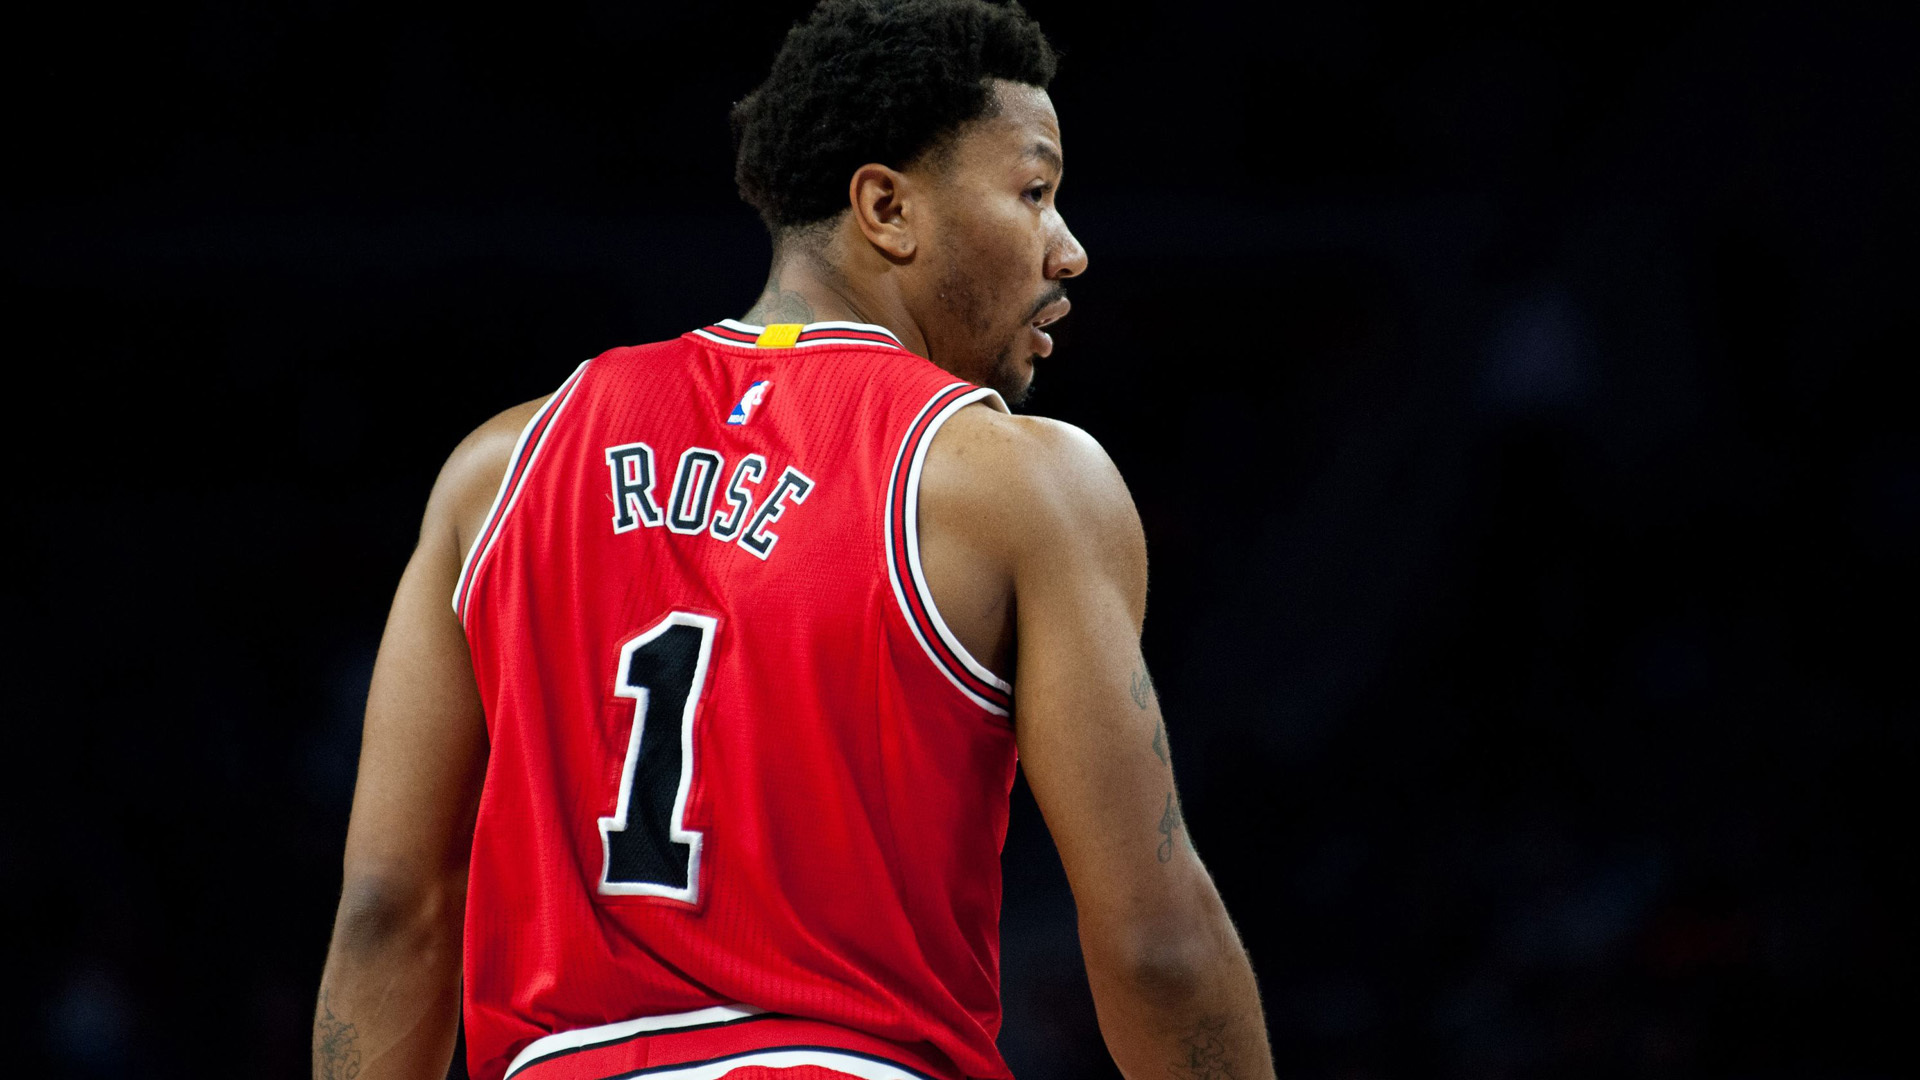 Derrick Rose Wallpapers Images Photos Pictures Backgrounds